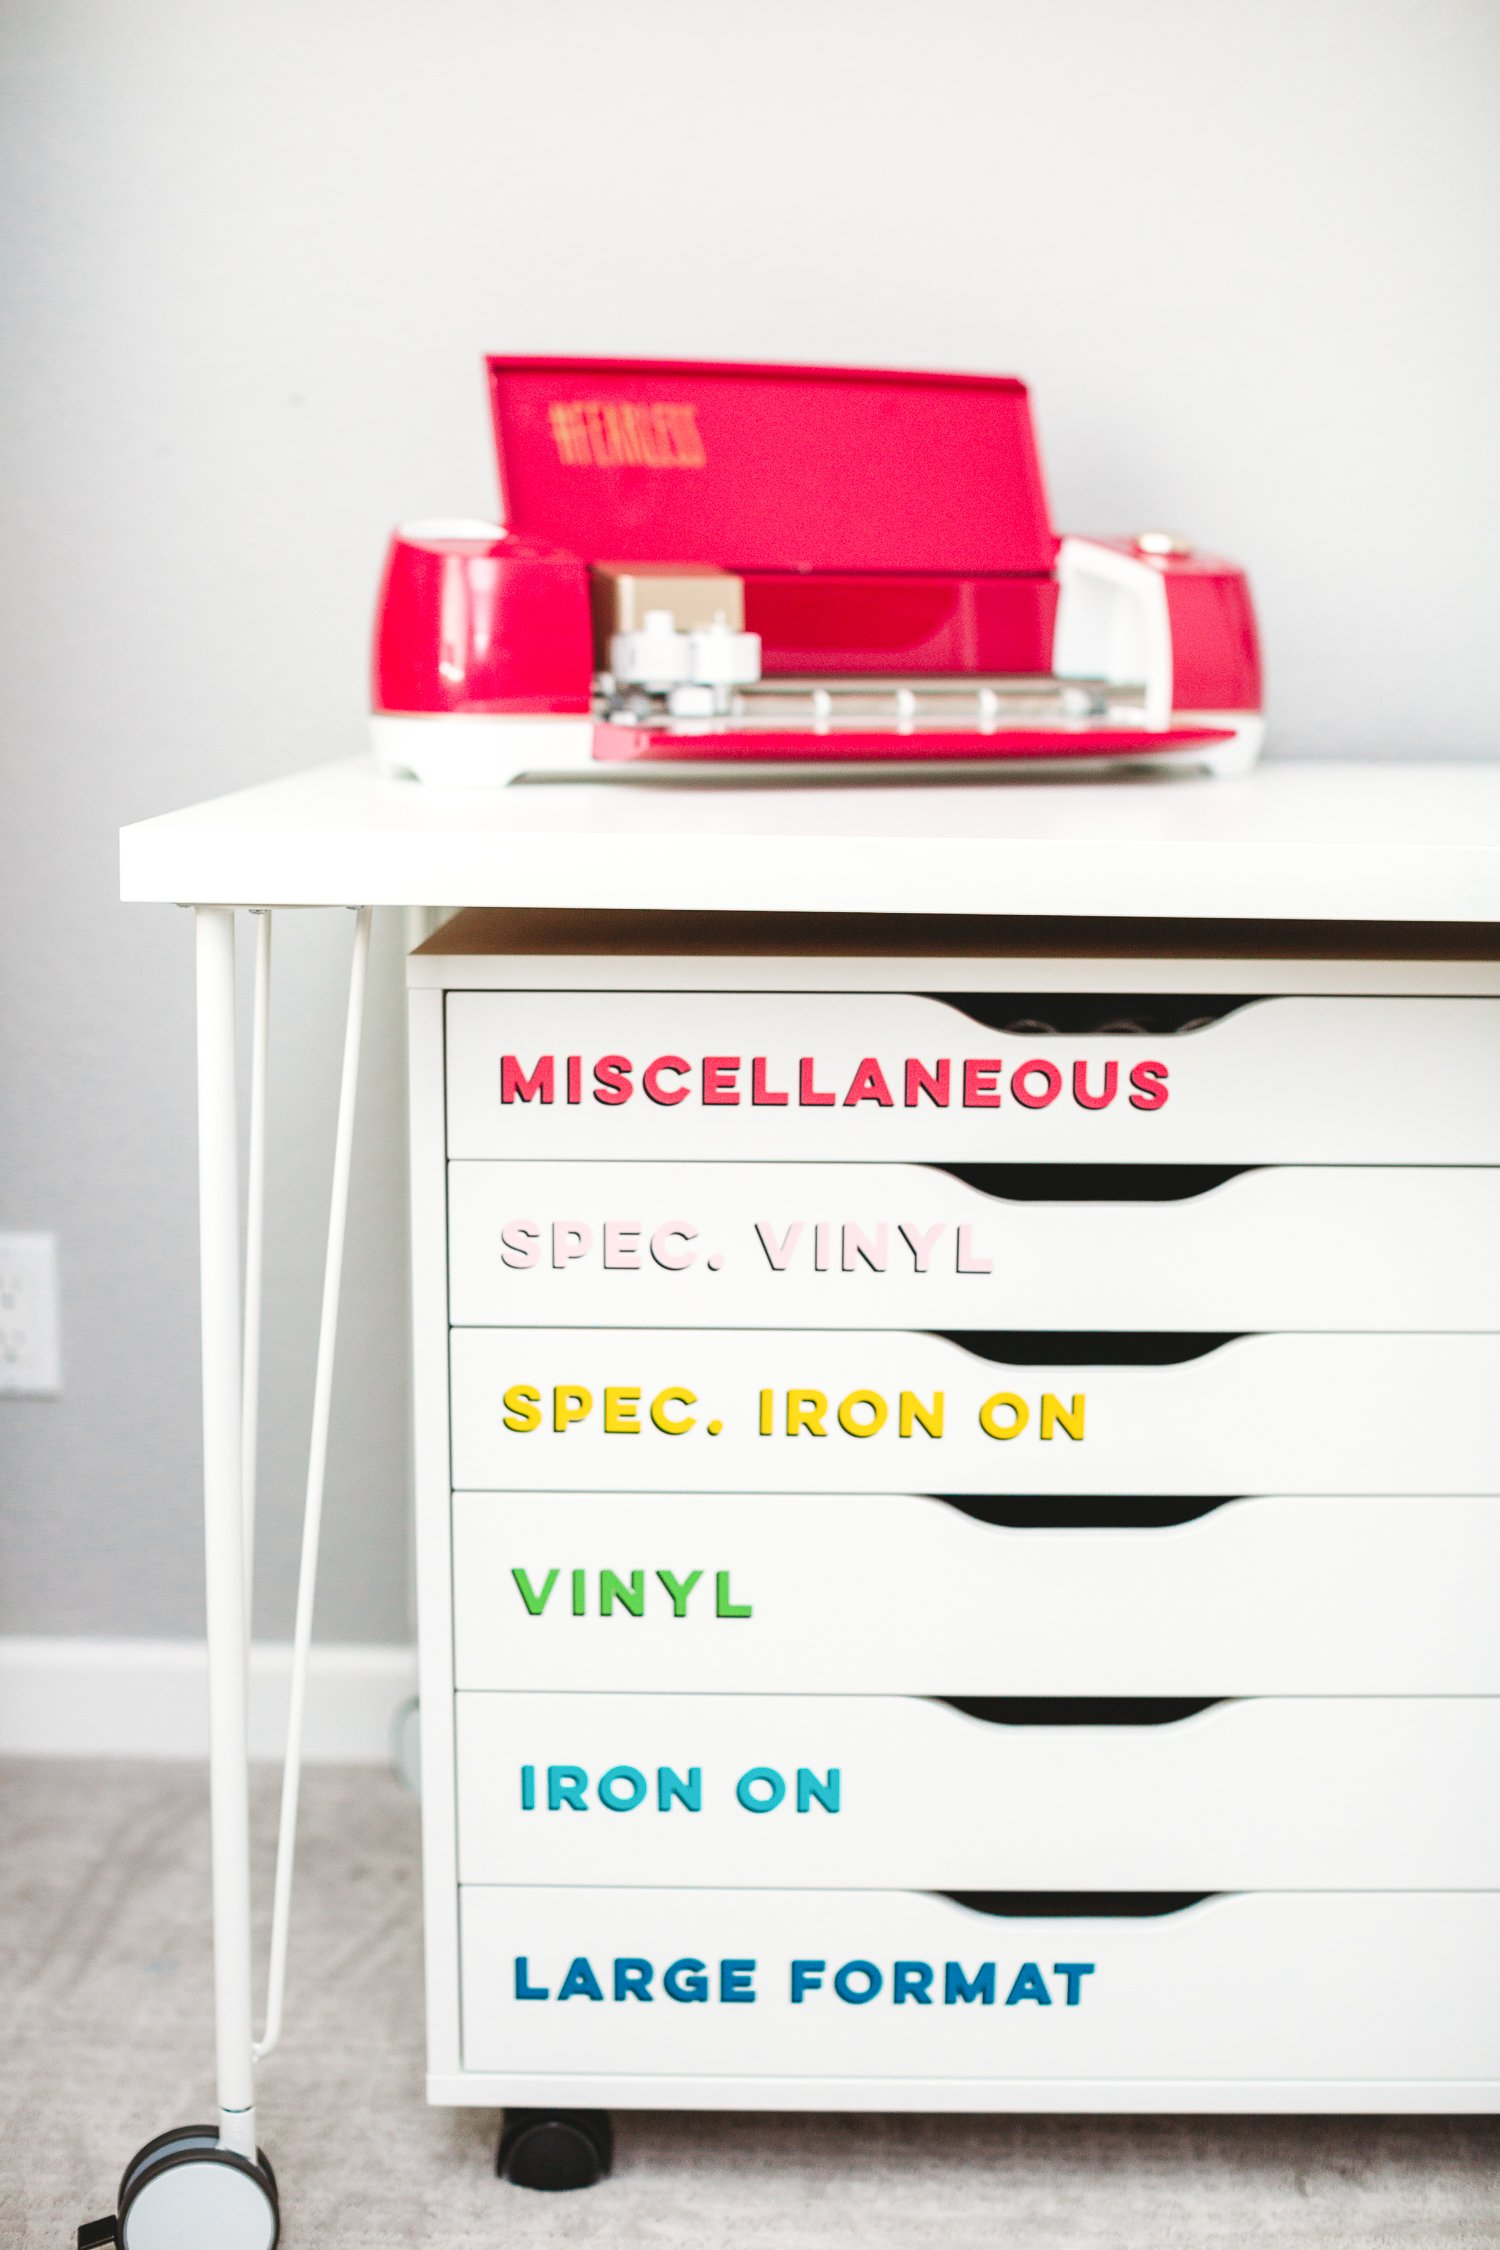 Organize your craft room with these bright modern craft room labels! Get more than 200 SVG labels to organize everything in your craft room, from adhesives to zippers. Cut on your Cricut or other cutting machine!